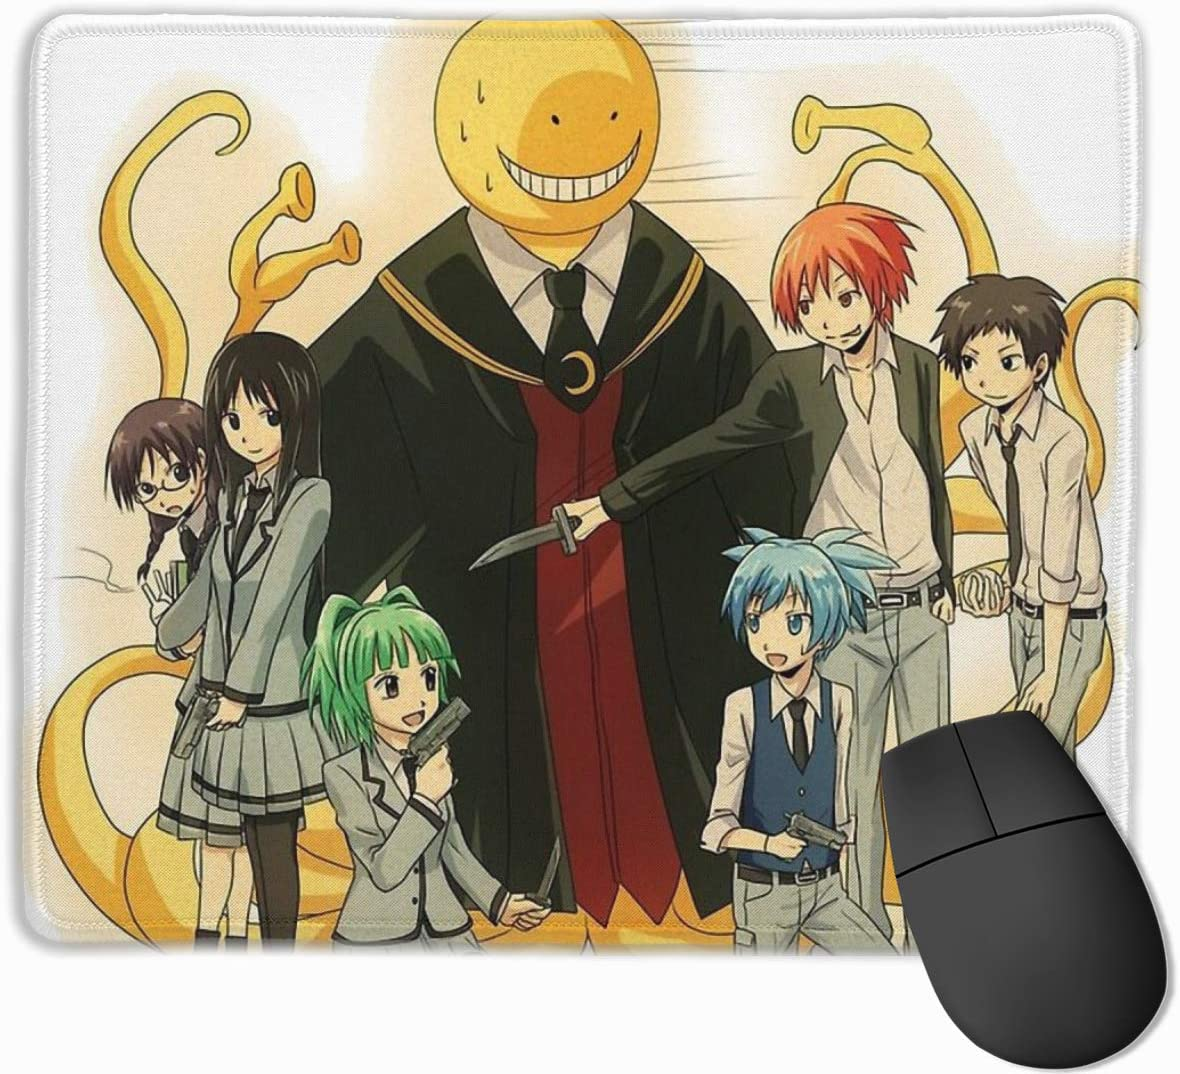 This is Fine Meme Dog Non-Slop Rubber Mousepad Gaming Mouse Pad with Stitched Edge 11.8x9.8